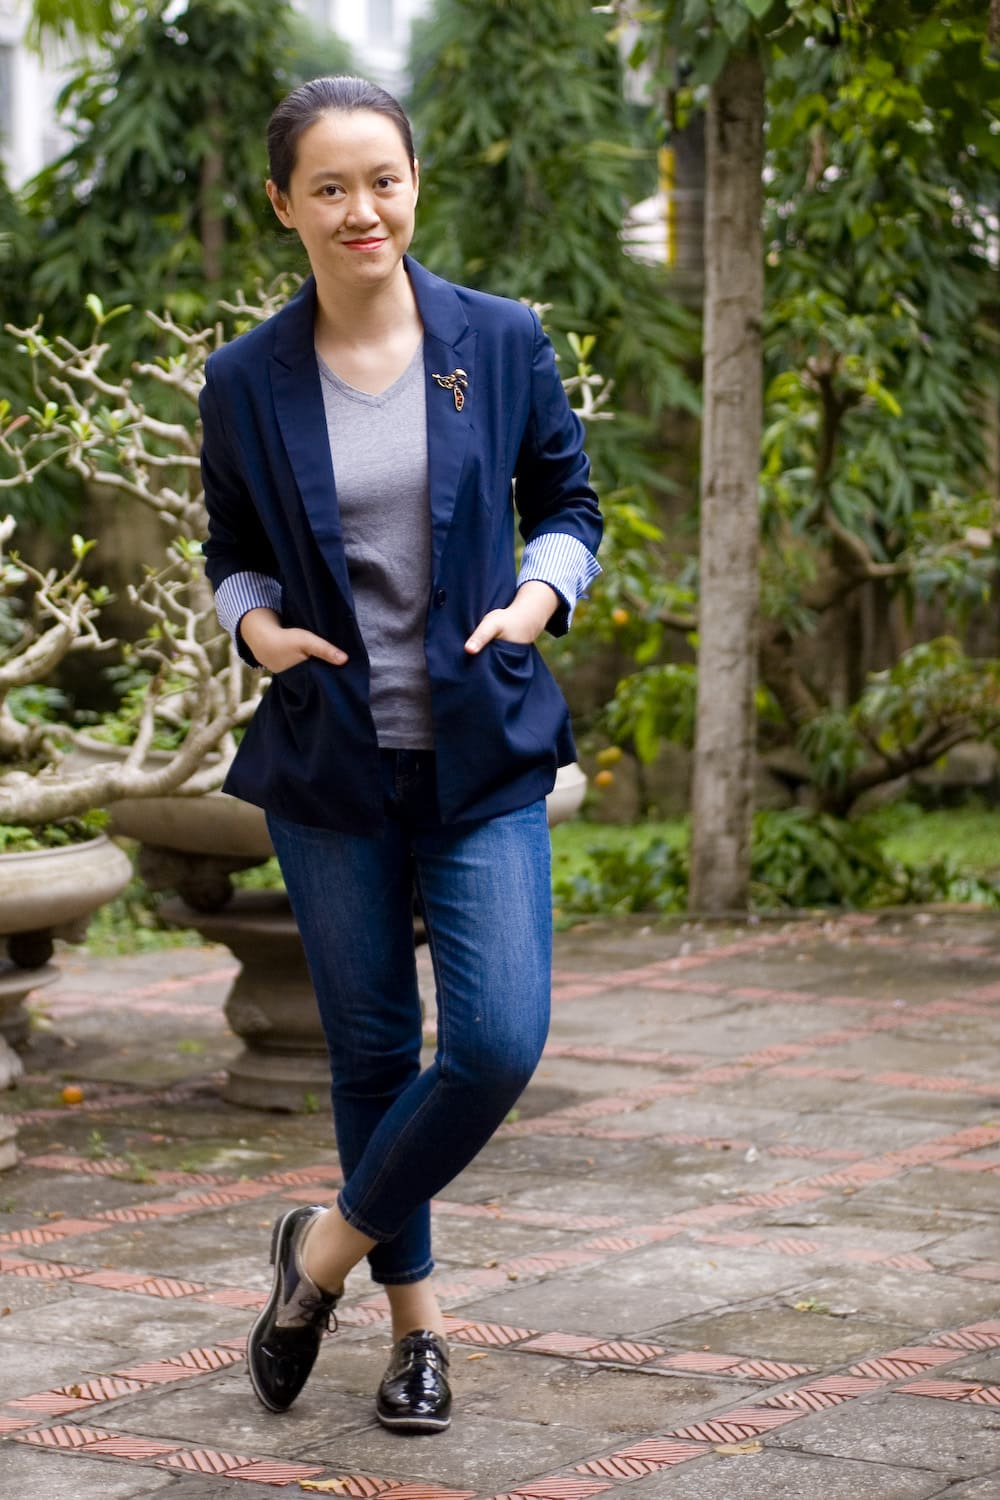 Salazar in grey top blue oversize blazer, loafers and jeans